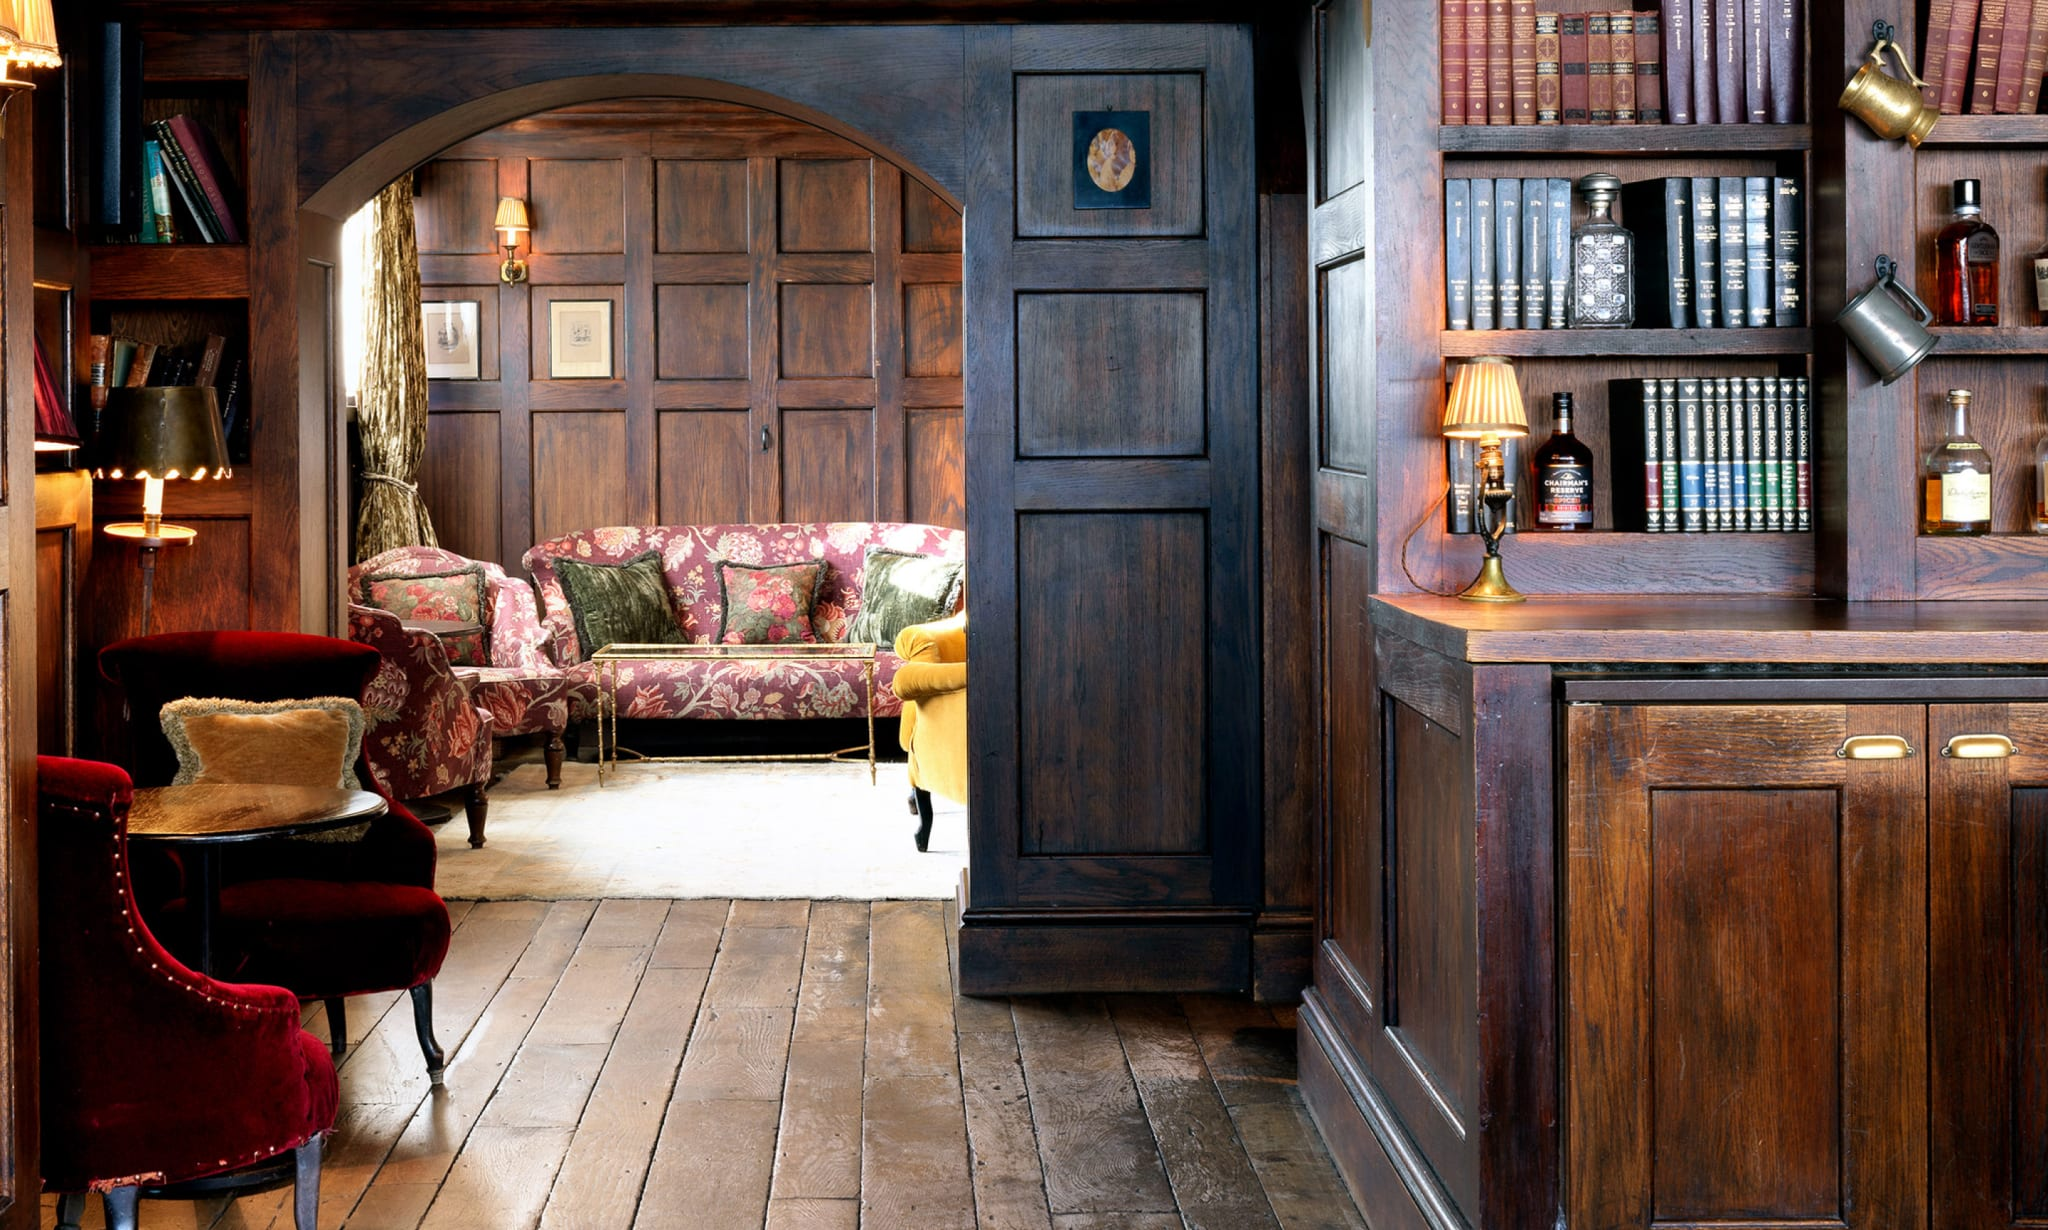 A wood panelled space with bookshelves and seating.